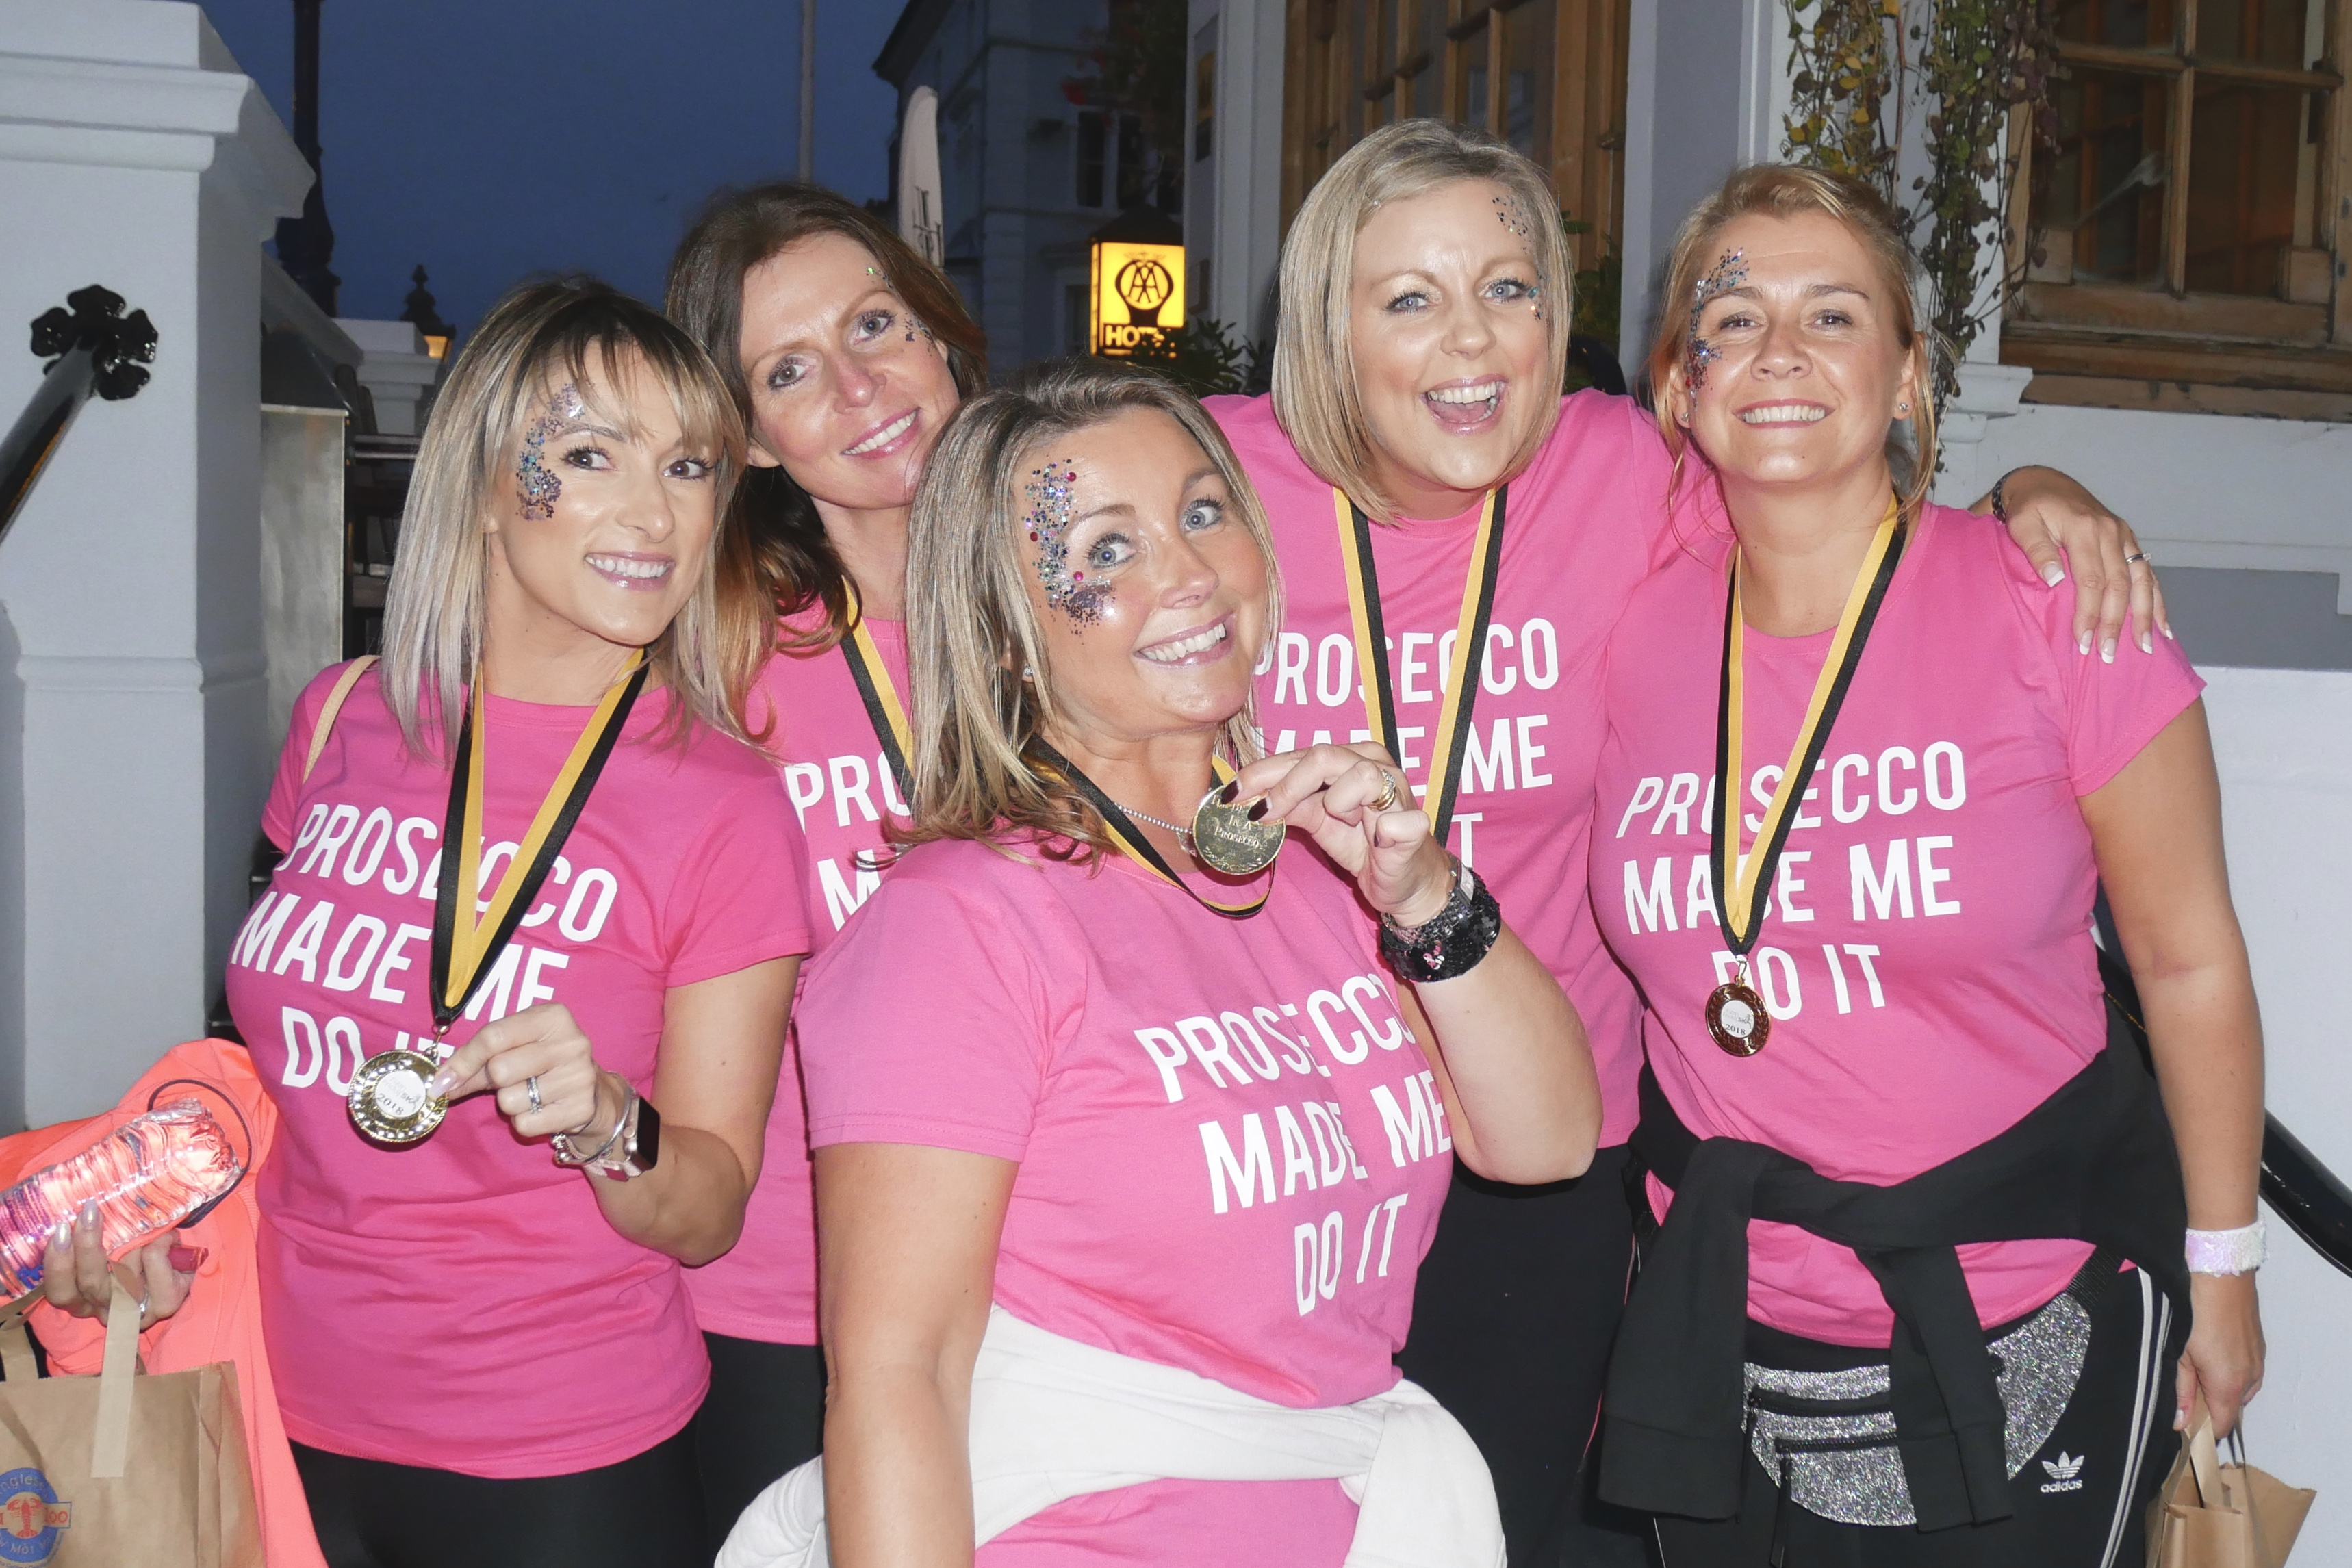 Fizzy Friday 5k - Network She Foundation Charity with Bella The Prosecco Van